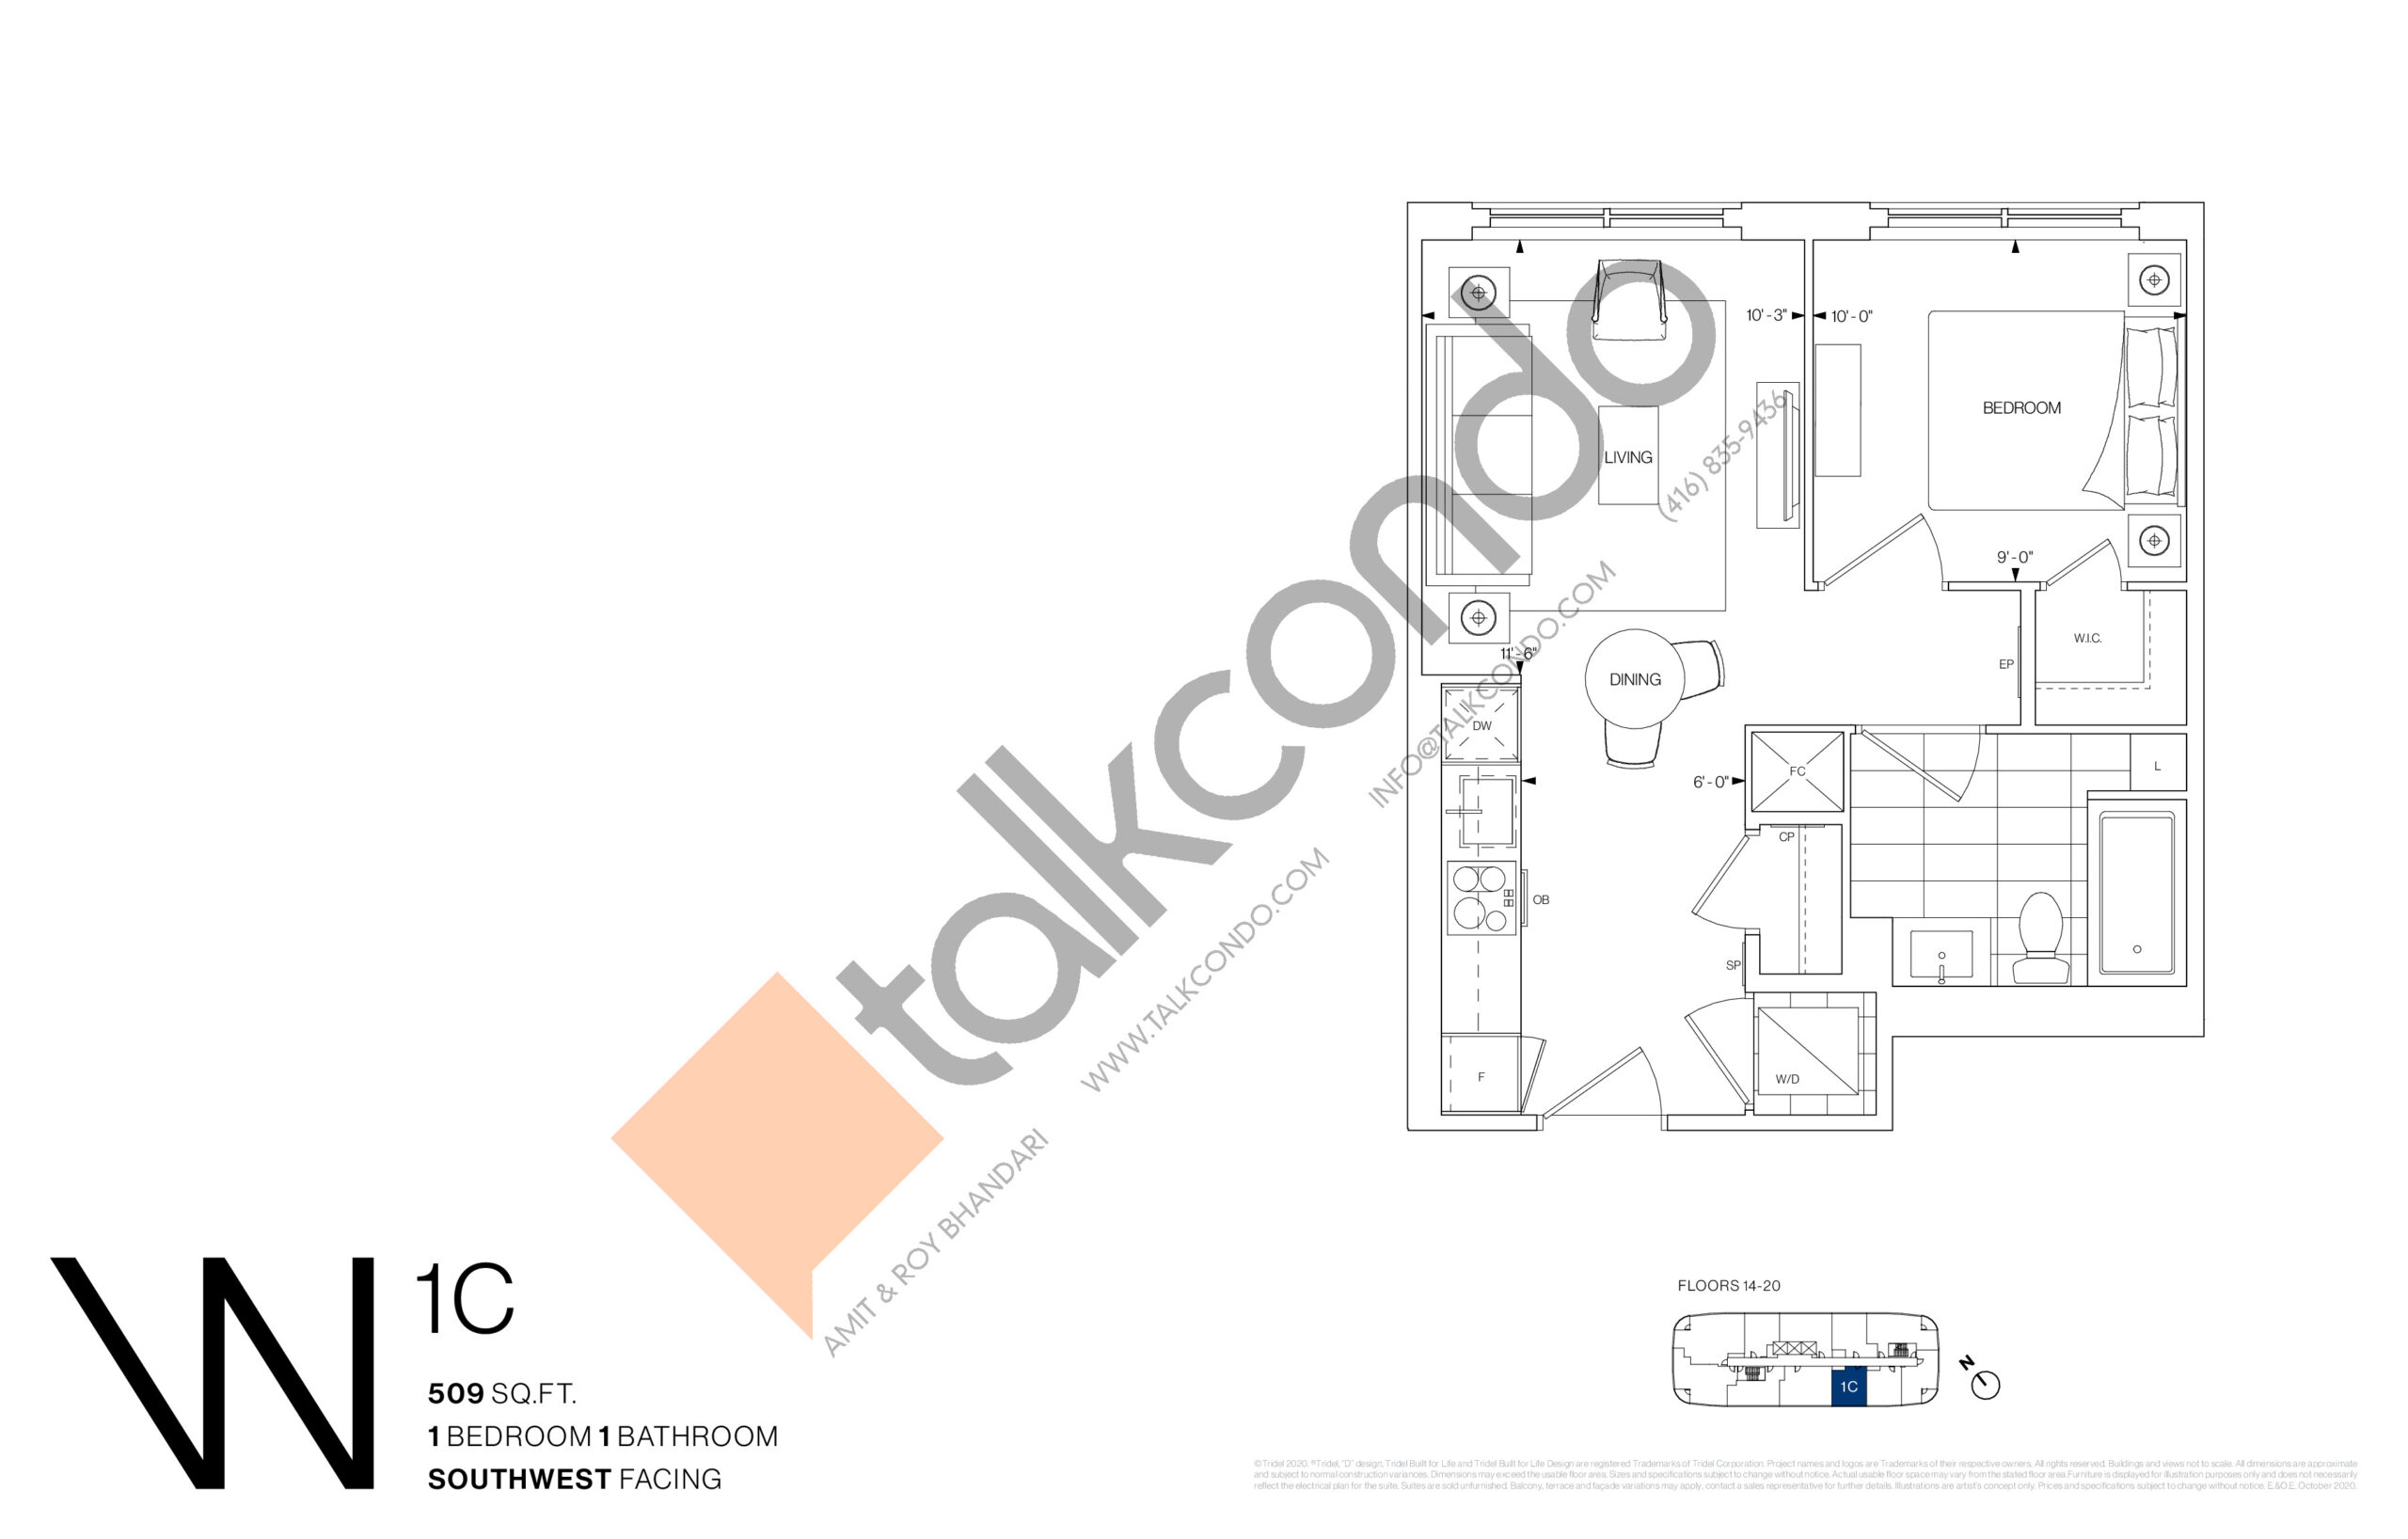 1C Floor Plan at Westerly Condos - 509 sq.ft